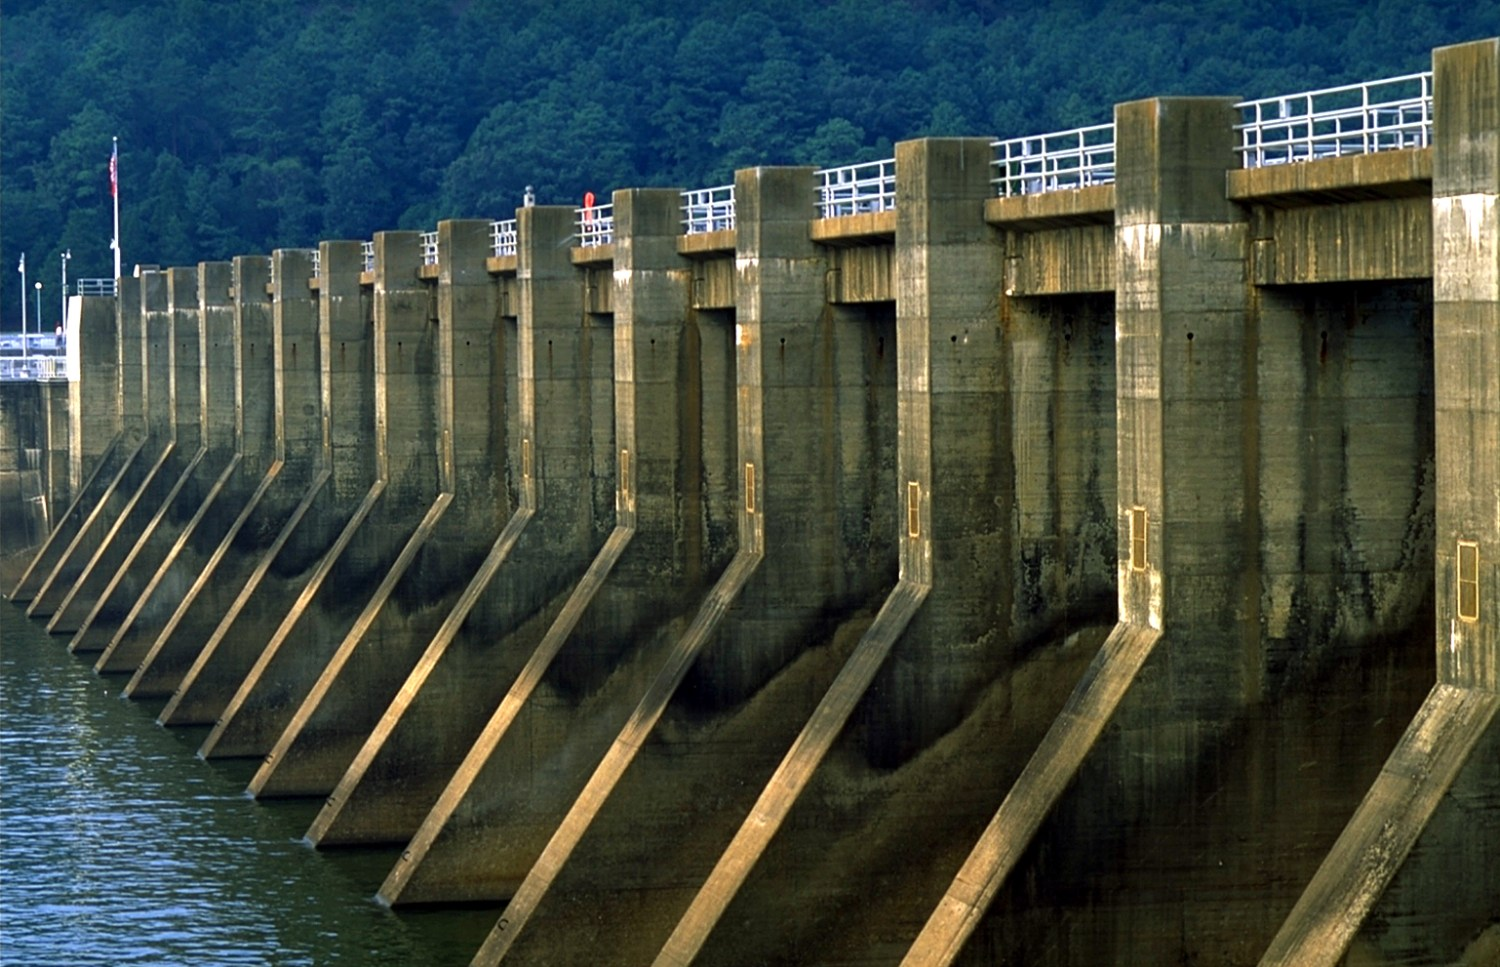 Guntersville Dam is a federally operated facility on the Tennessee River in northeastern Alabama. But most Alabama dams -- nine out of 10 -- are privately owned. The state does not know the condition or location of many of them.